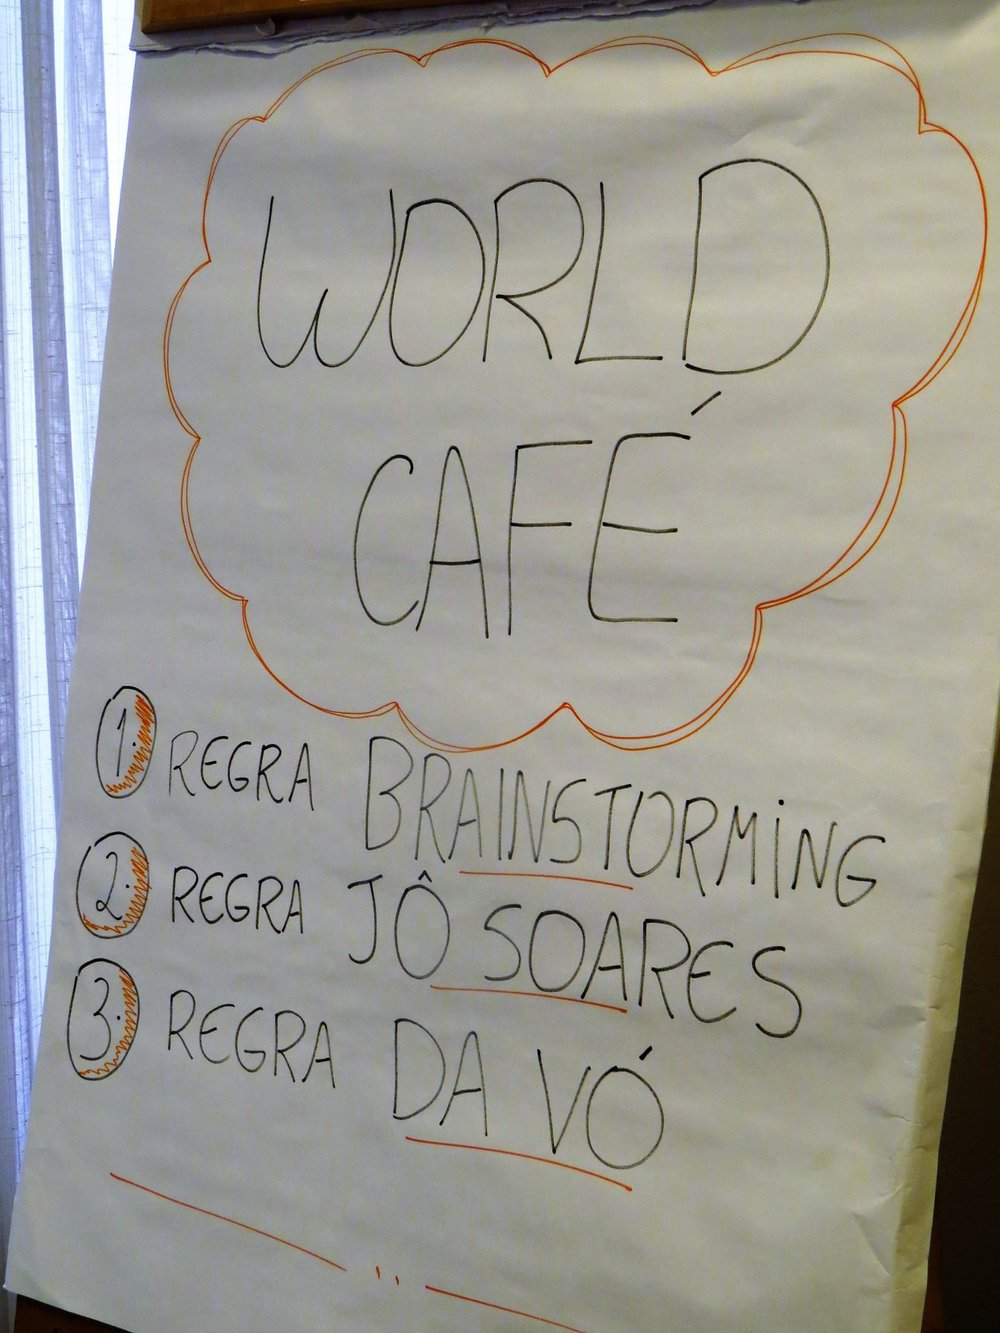 world cafe 1.jpg